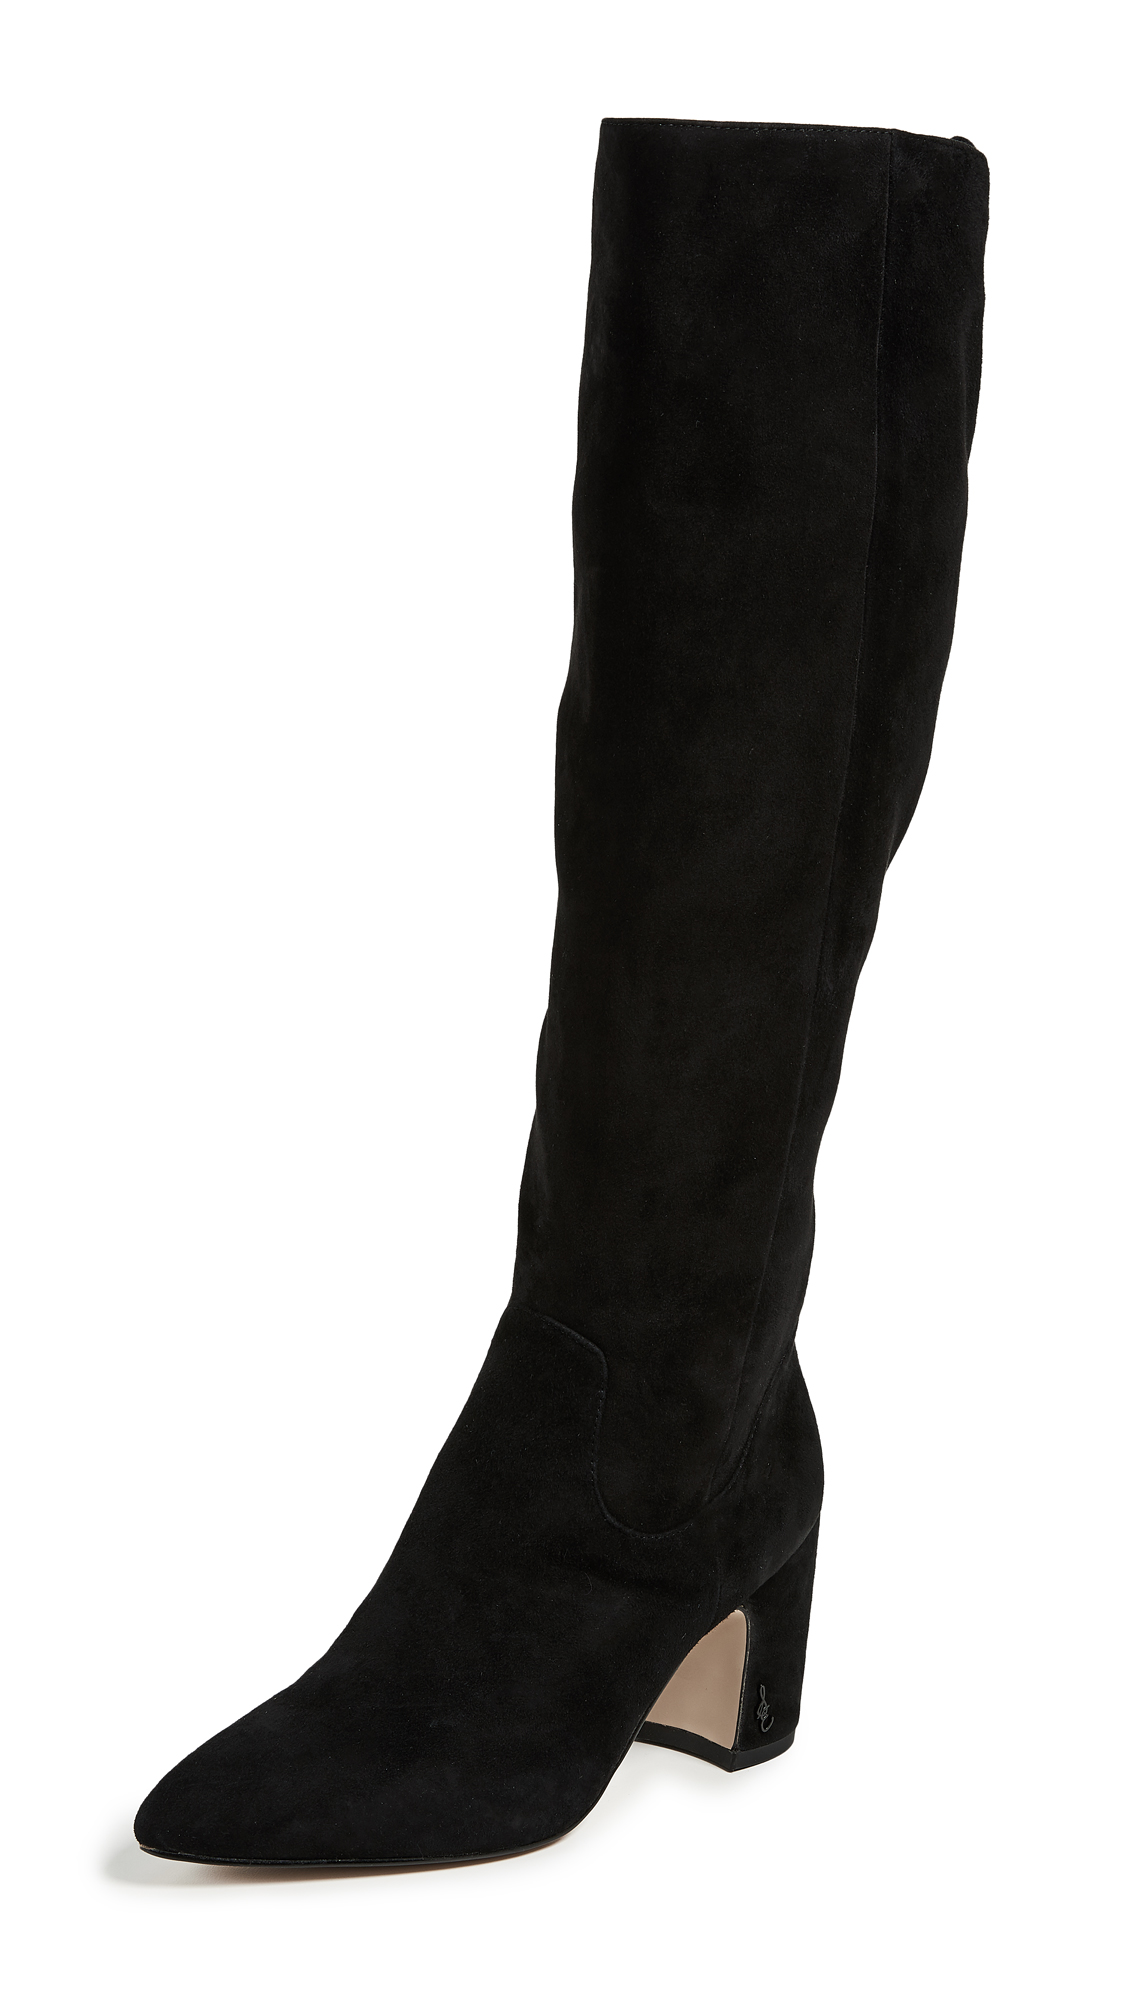 Sam Edelman Hai Tall Boots - 50% Off Sale